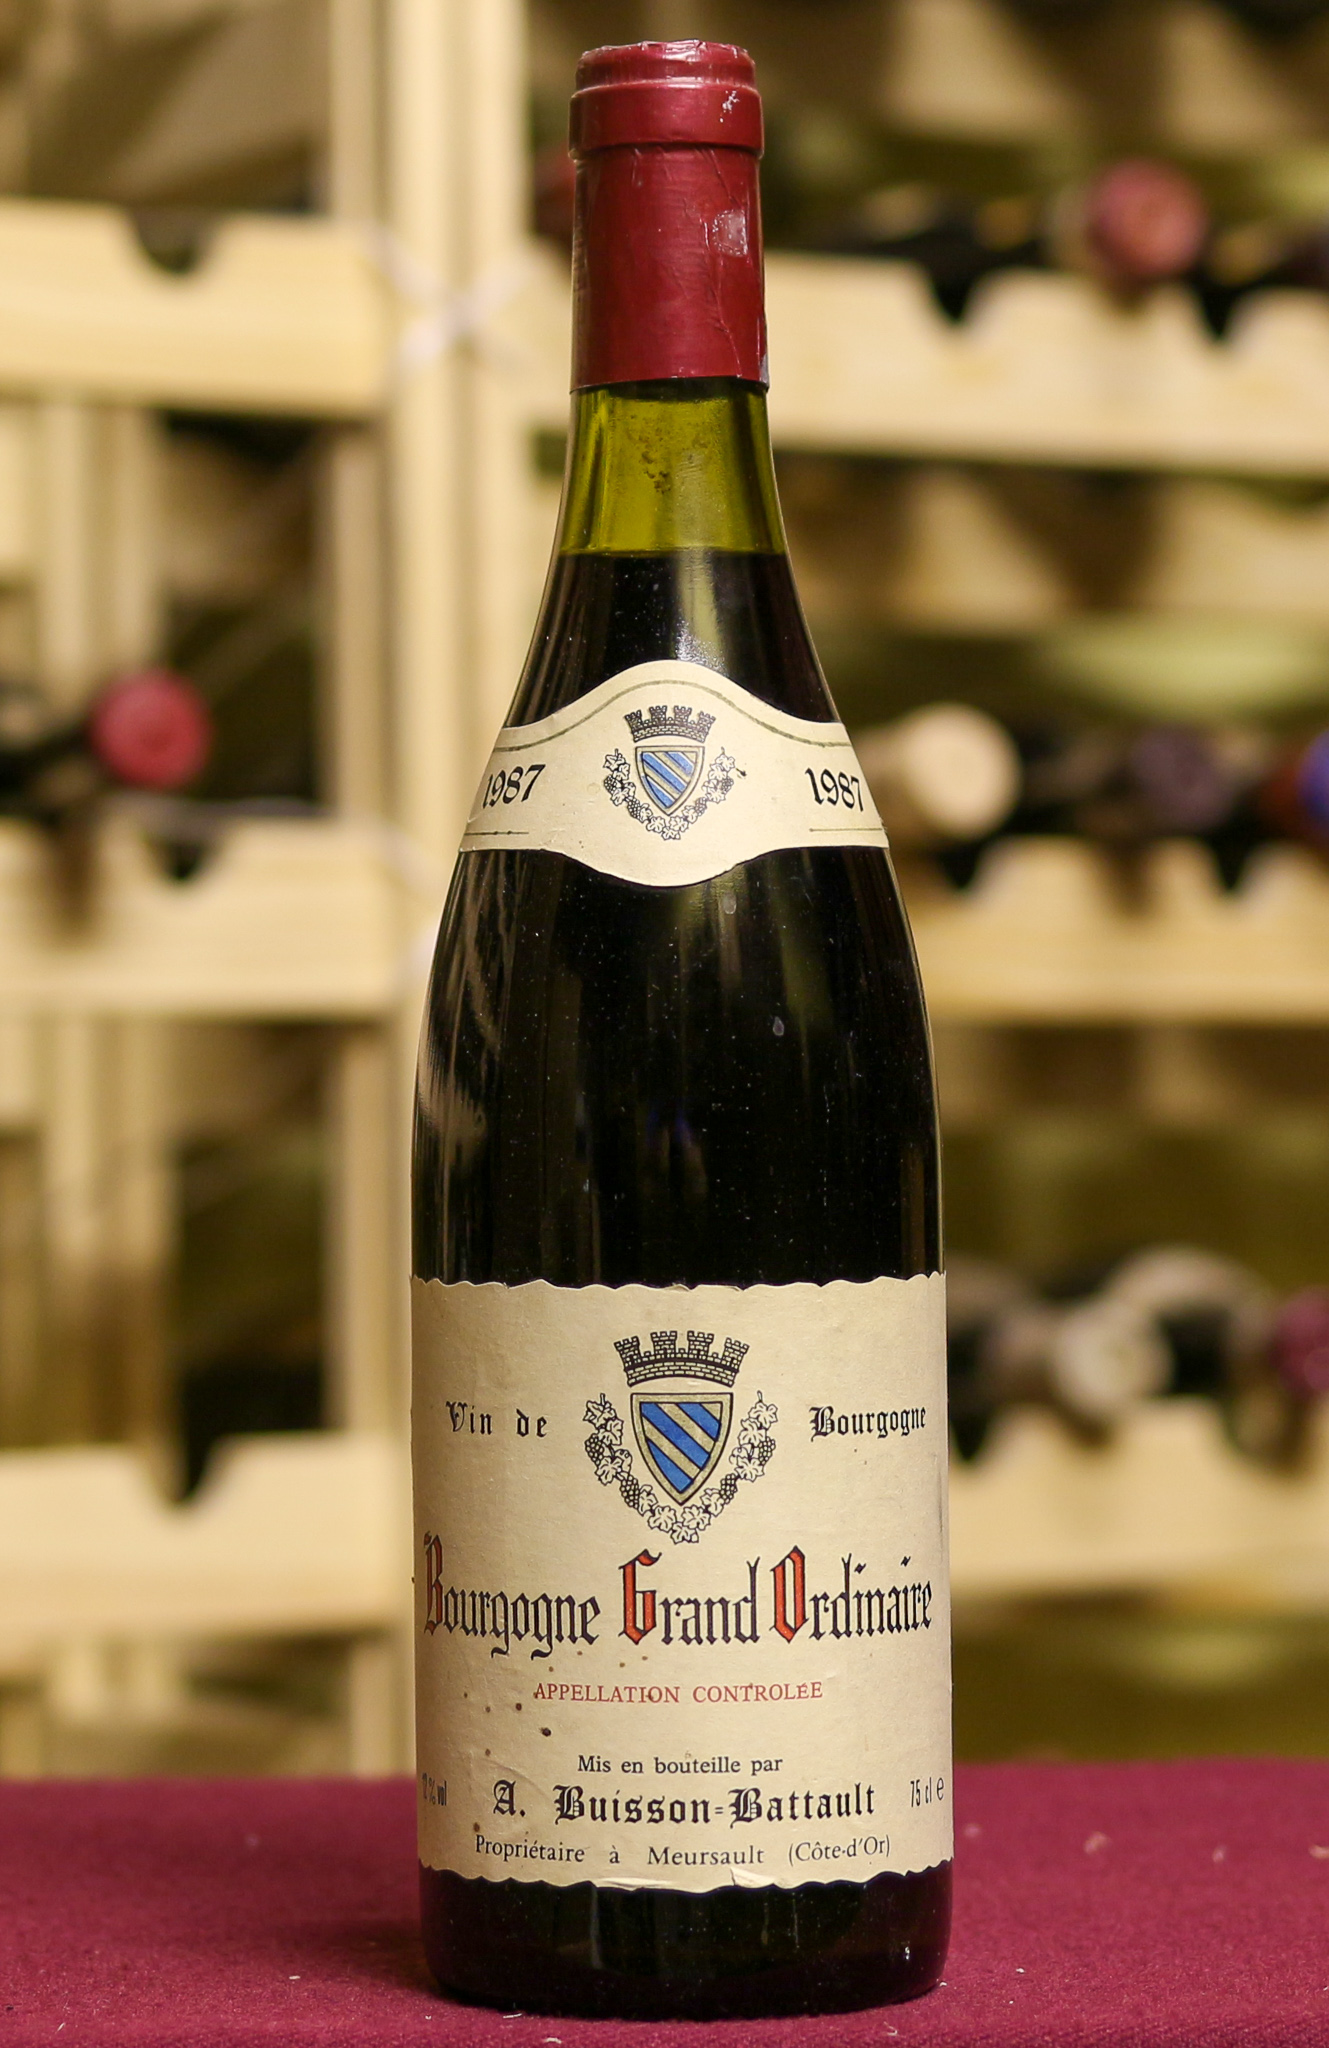 Вино Bourgogne Grand Ordinaire A. Buisson Battault 1987 года урожая